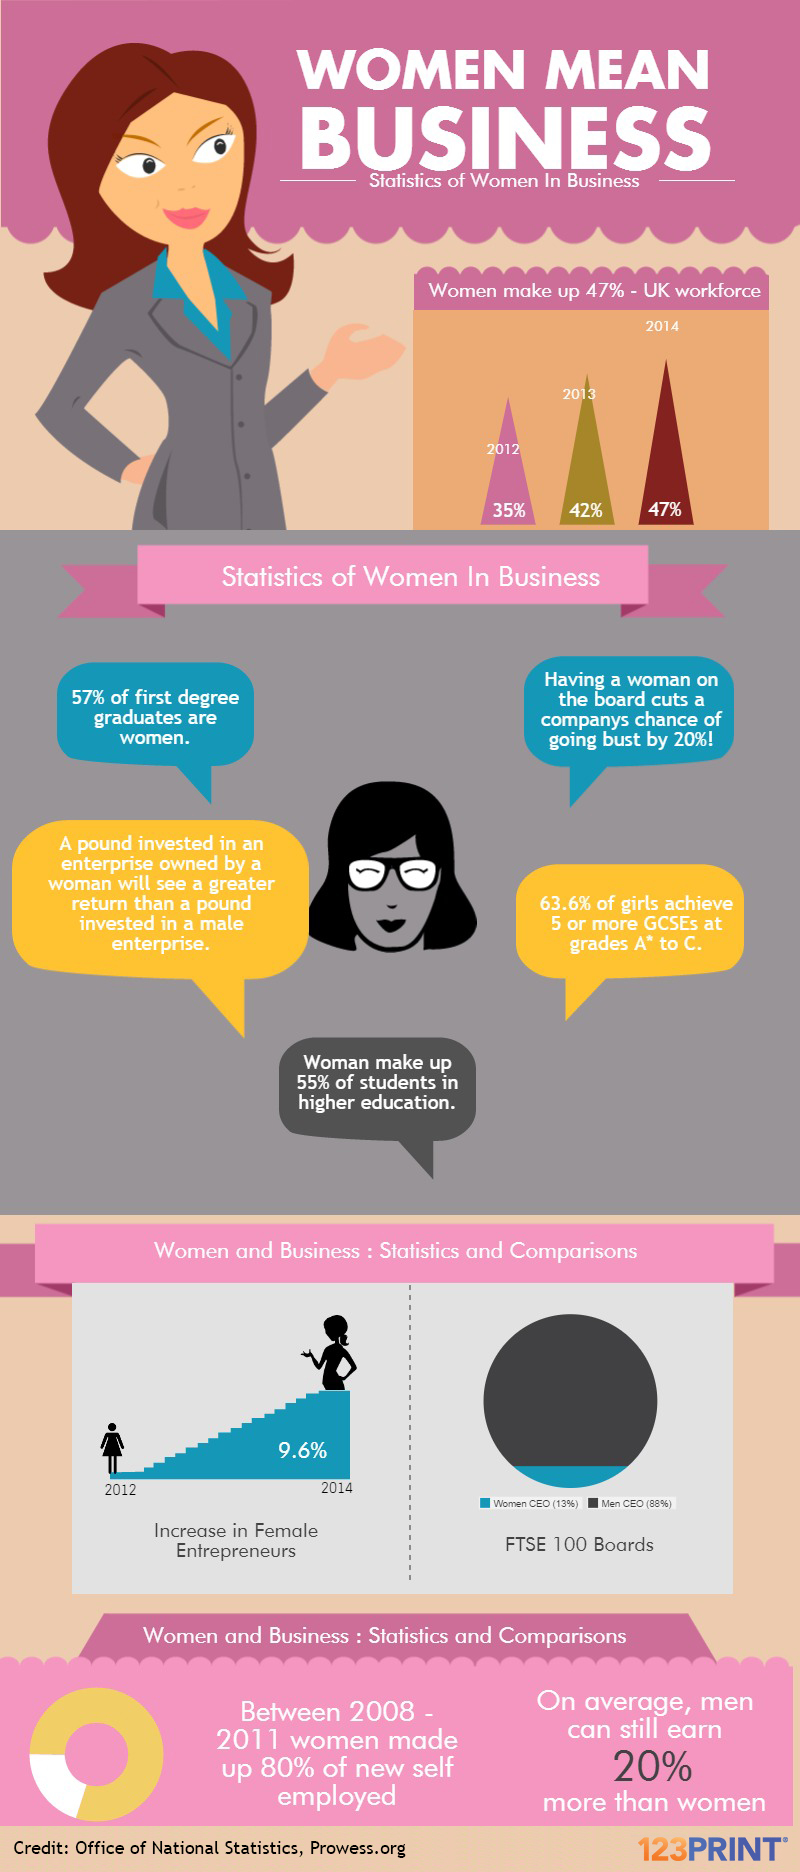 Infographic detailing the role and importance of women in business